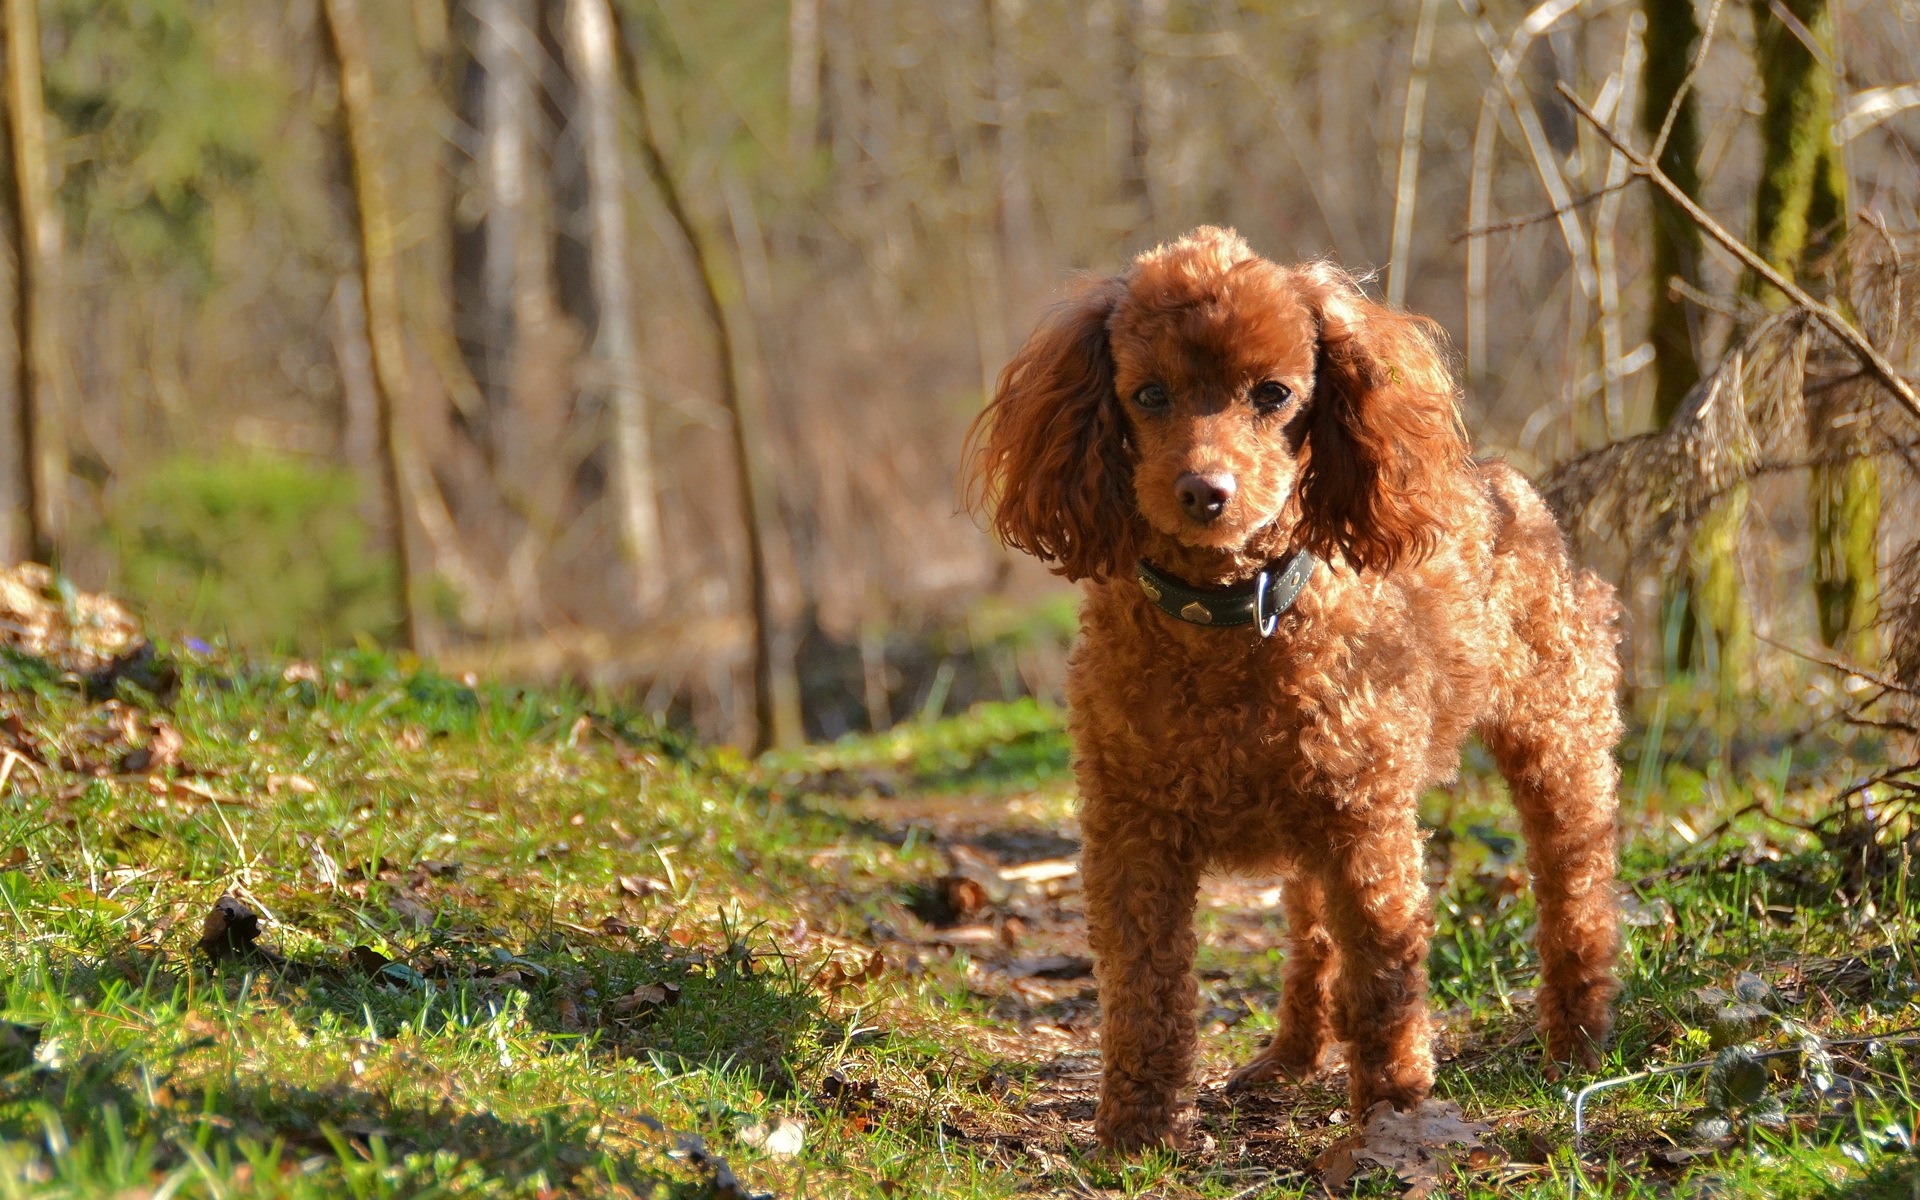 Cute Dogs Full Hd Wallpapers 14 Hd Poodle Dog Wallpapers